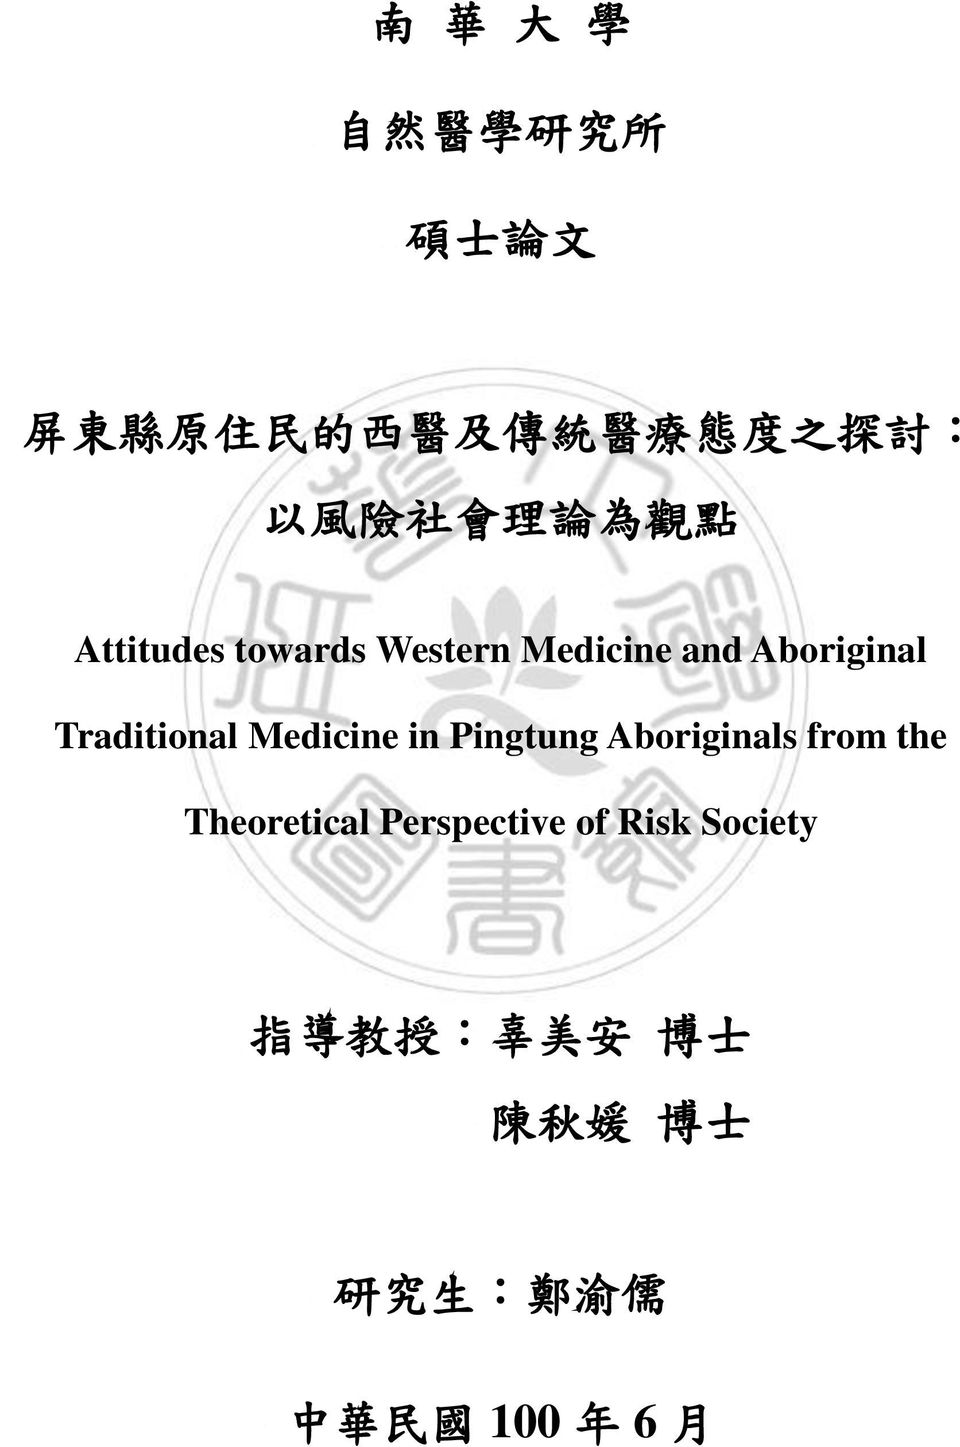 Traditional Medicine in Pingtung Aboriginals from the Theoretical